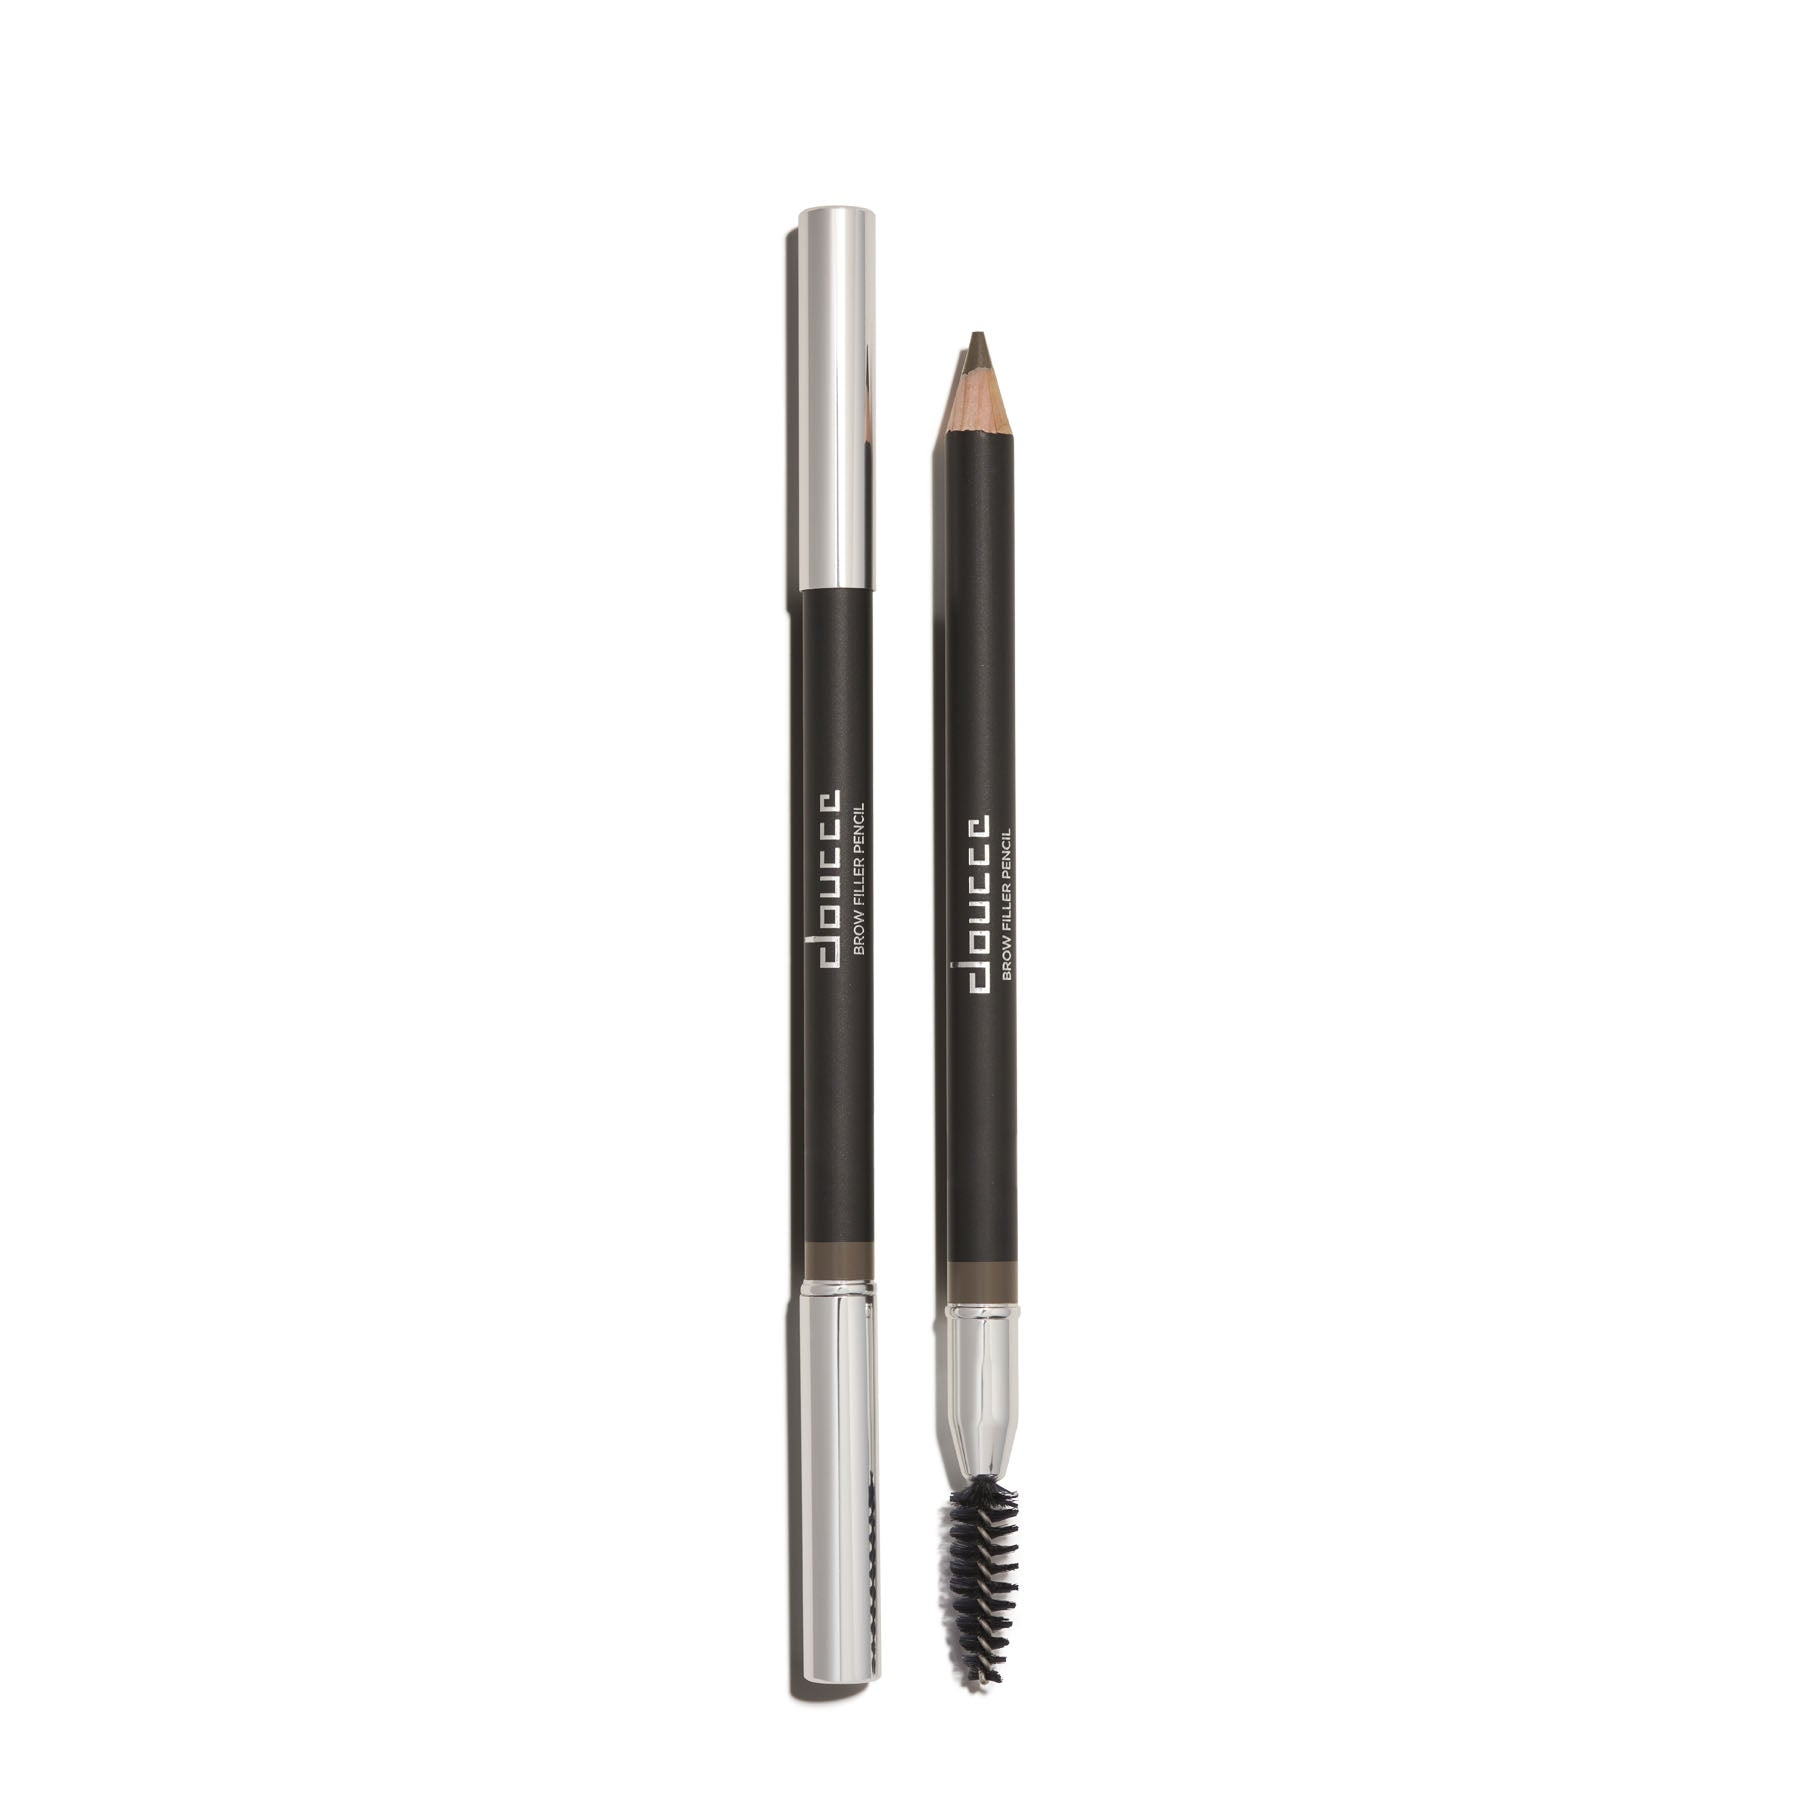 Brow Filler Pencil